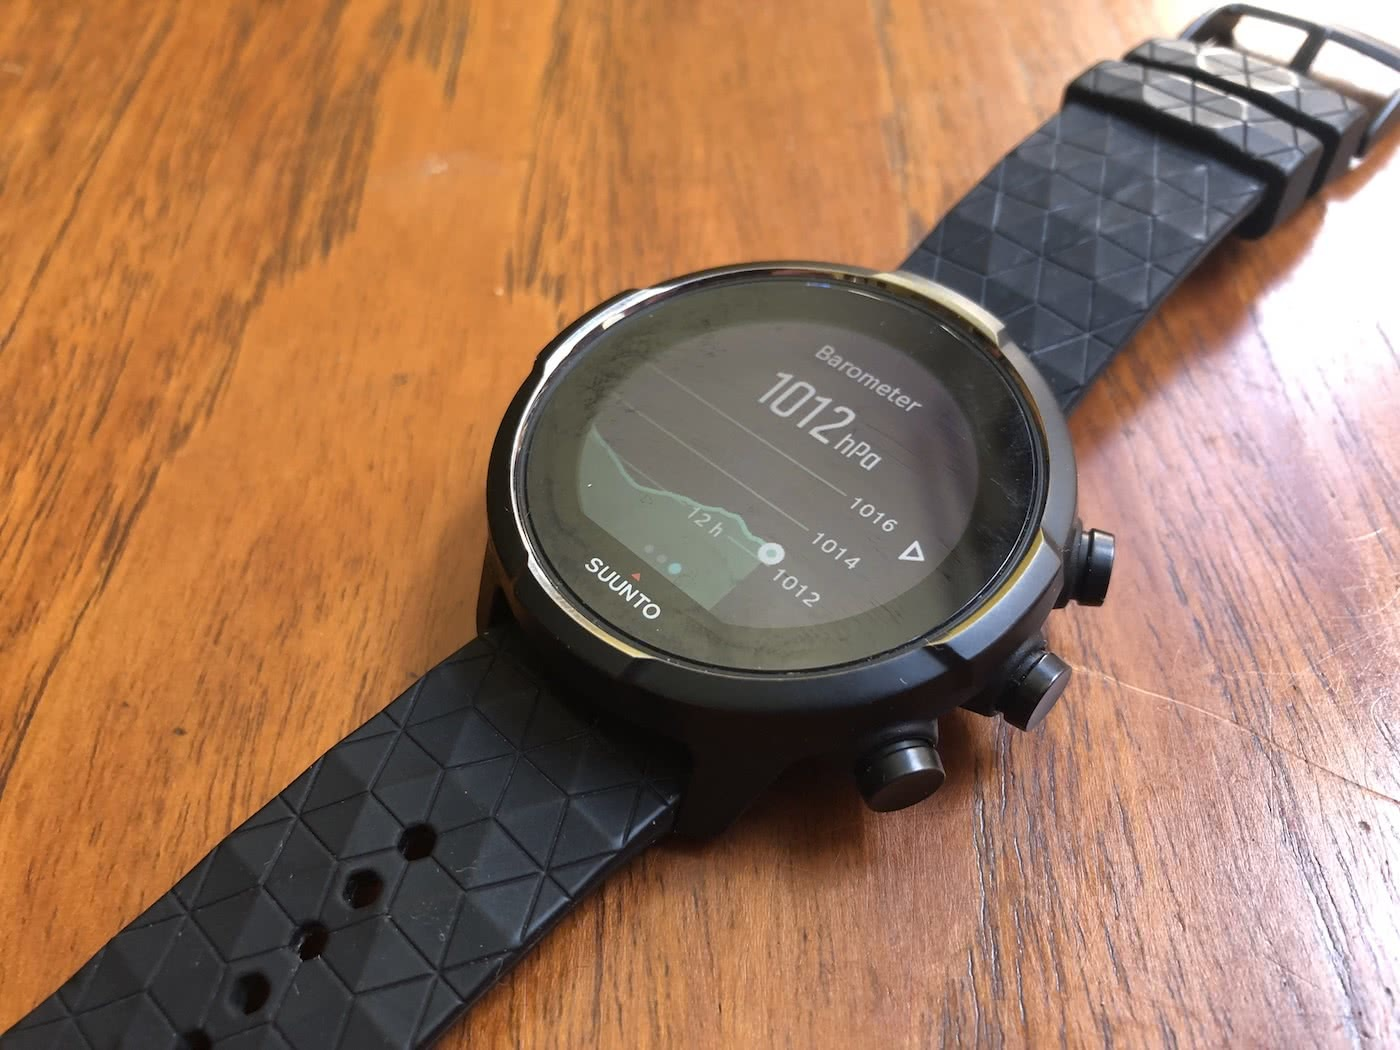 Relive The Battery Glory Days - Suunto 9 Baro // Gear Review, tim ashelford, gps watch, barometer